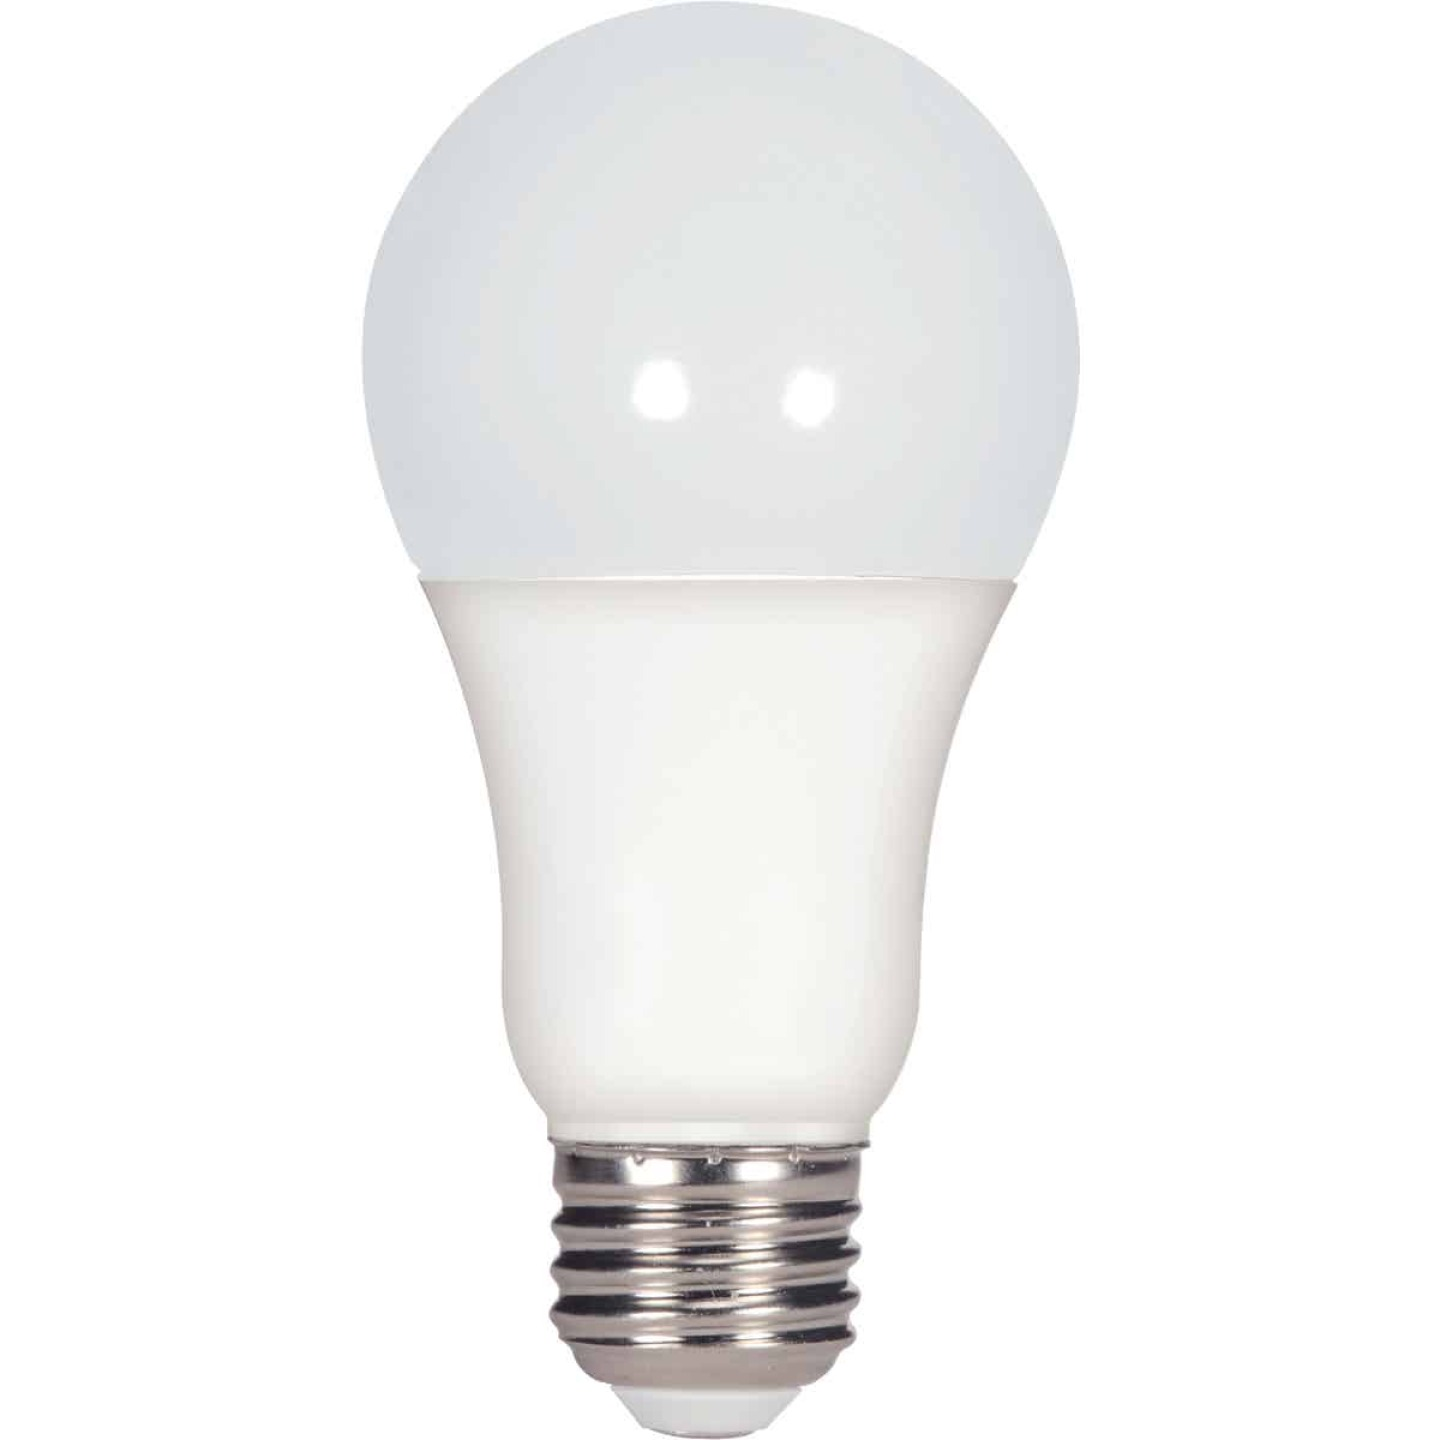 Satco 100W Equivalent Warm White A19 Medium Dimmable LED Light Bulb Image 1